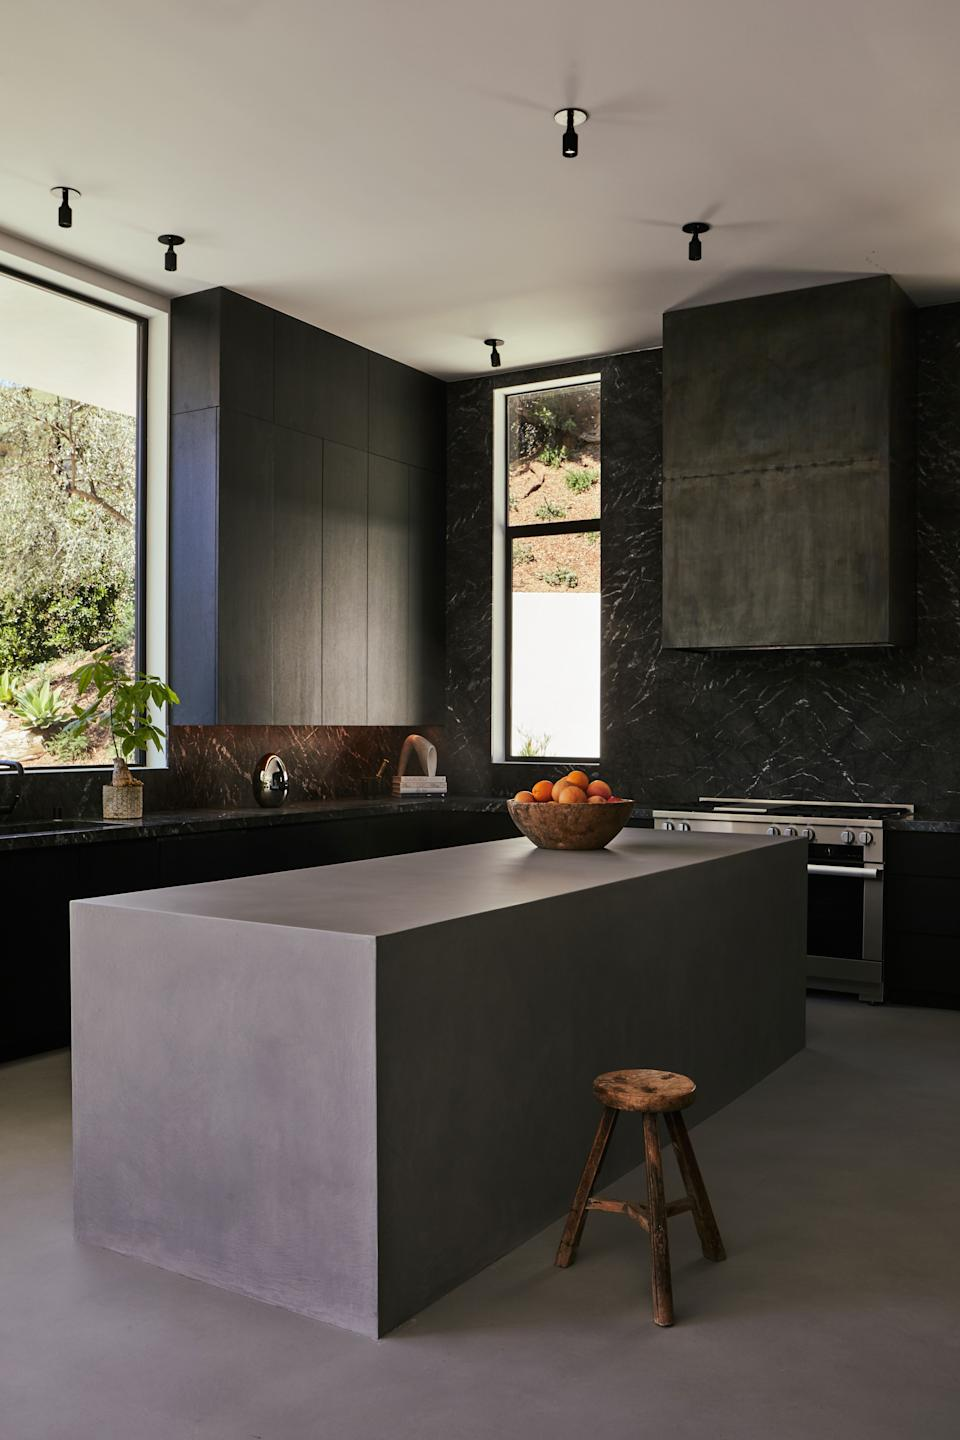 In the kitchen of a midcentury-inspired Hollywood Hills home designed by OSKLO, the blackened steel hood was custom-made, the countertops in honed negro d'Alba are from Stoneland, the spun fiber table lamp was purchased in Morocco, and the American Folk stool is from the 1930s. The knotted burl bowl on the custom concrete finished island was bought in Japan.